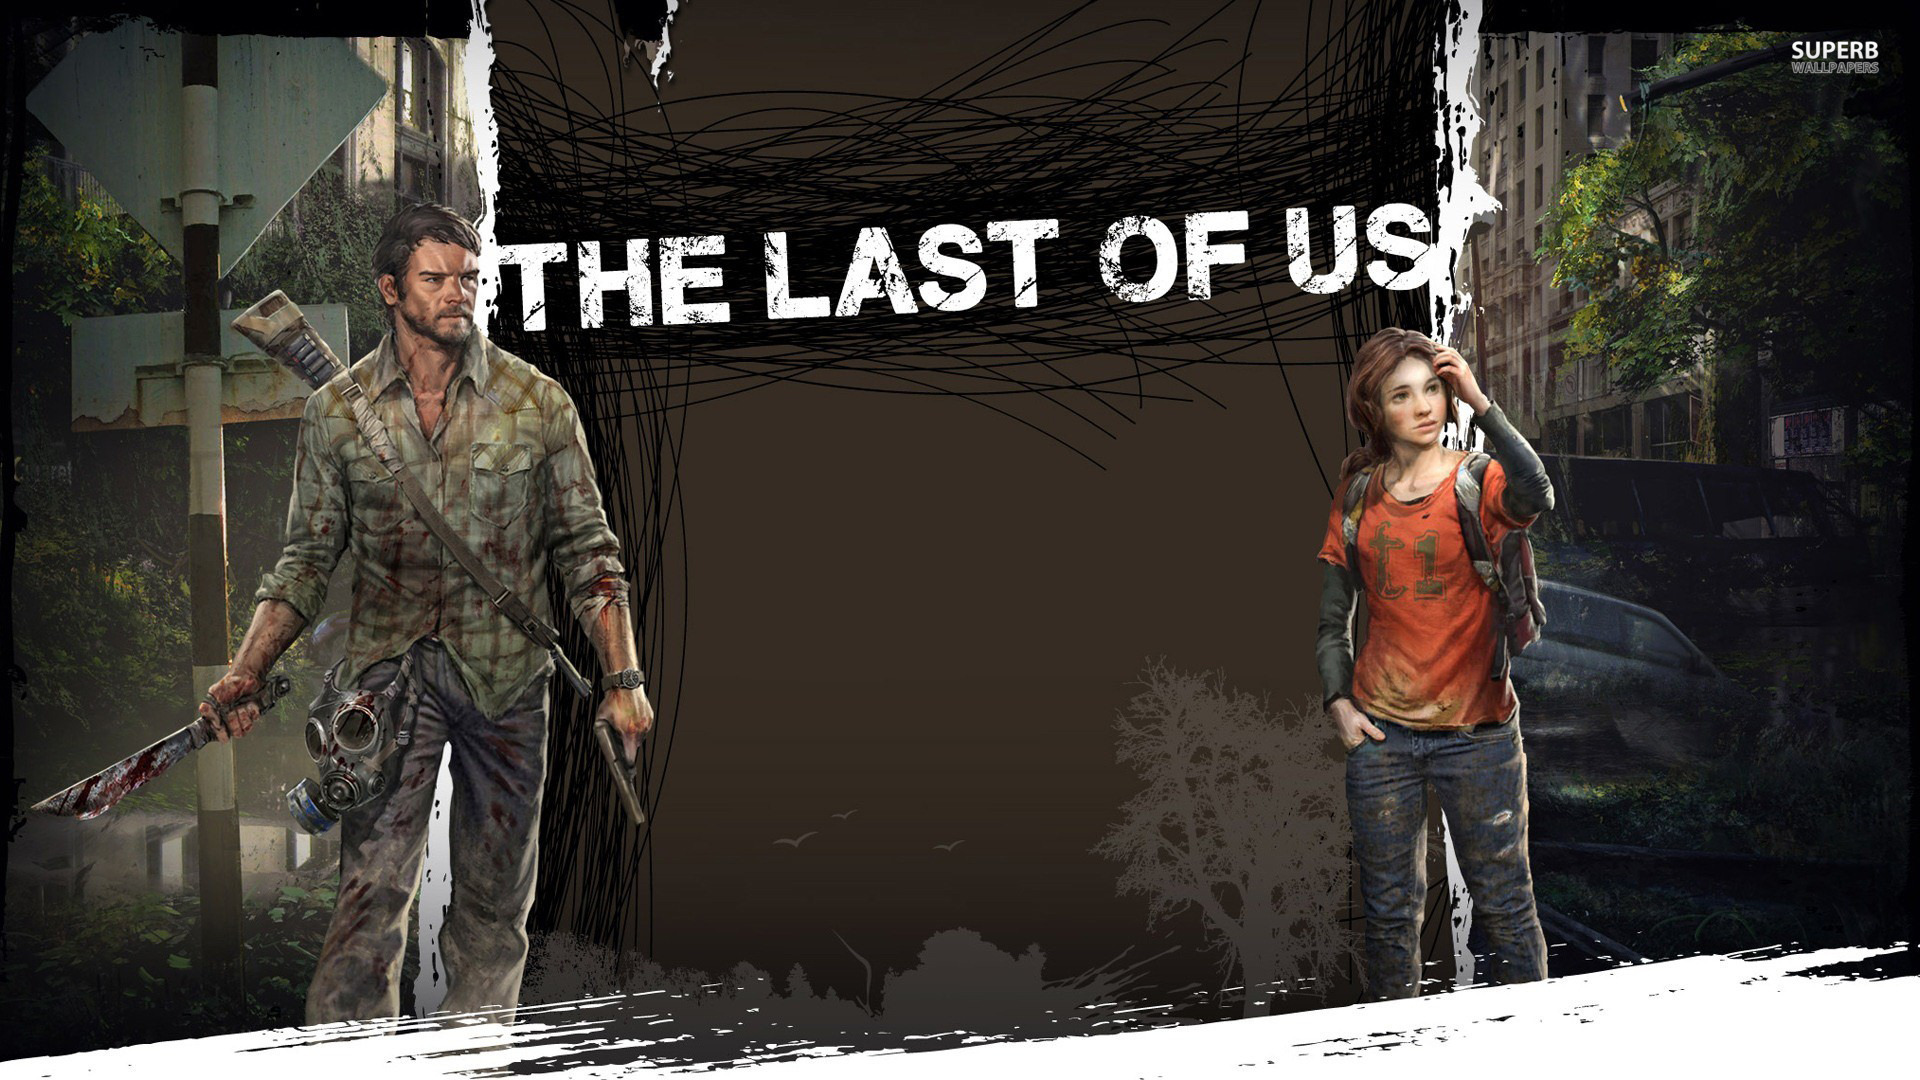 the last of us ellie wallpaper hdThe Last Of Us Wallpapers Full HD 1920x1080